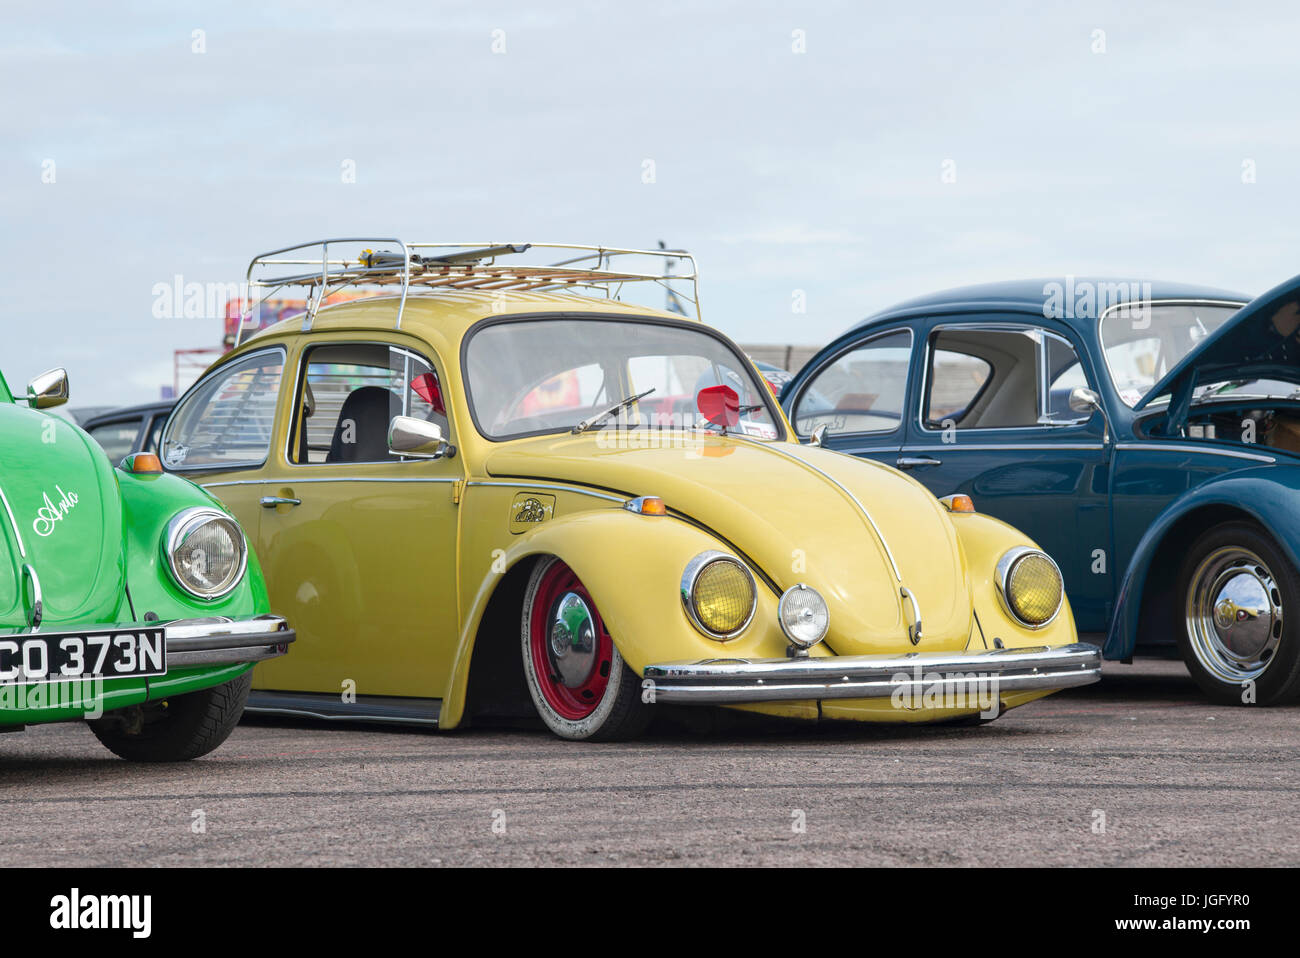 Classic Vw Beetle Cars At A Vw Show Uk Stock Photo